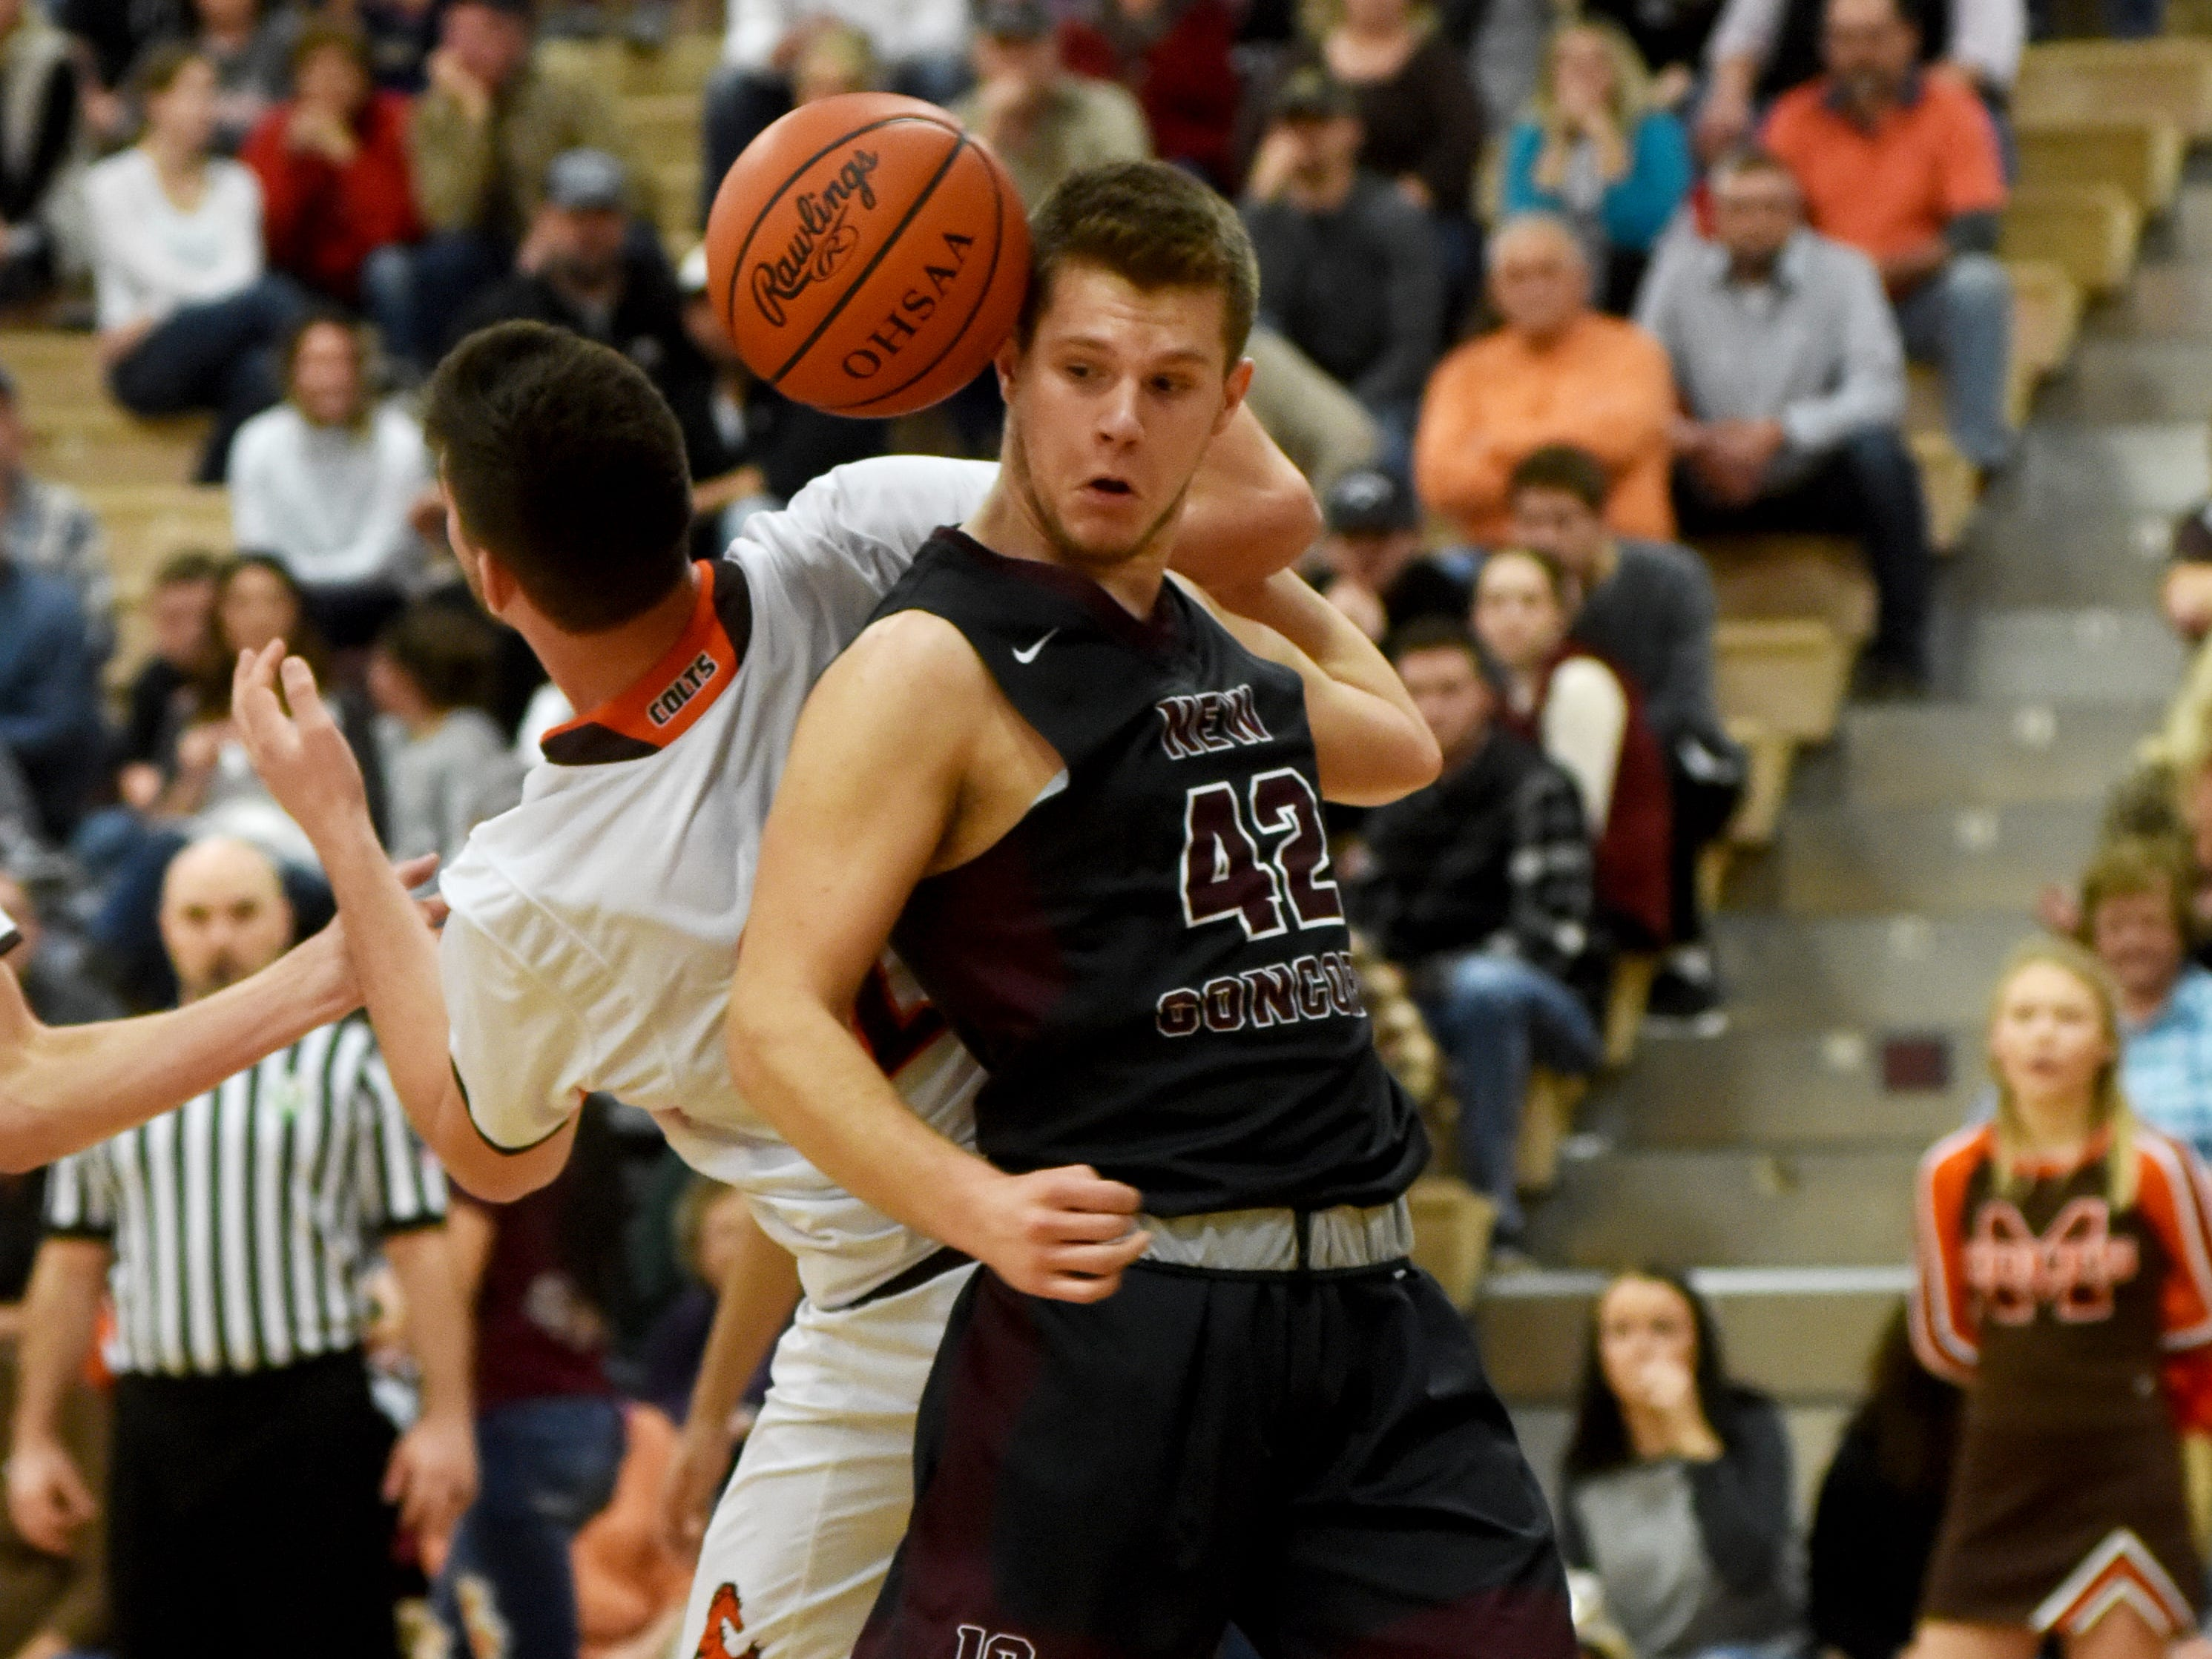 John Glenn's Ben Judd gets tangled up with Meadowbrook's Davis Black while trying to pull down a rebound in the first half of the Muskies' 61-38 loss on Friday night in Byesville.